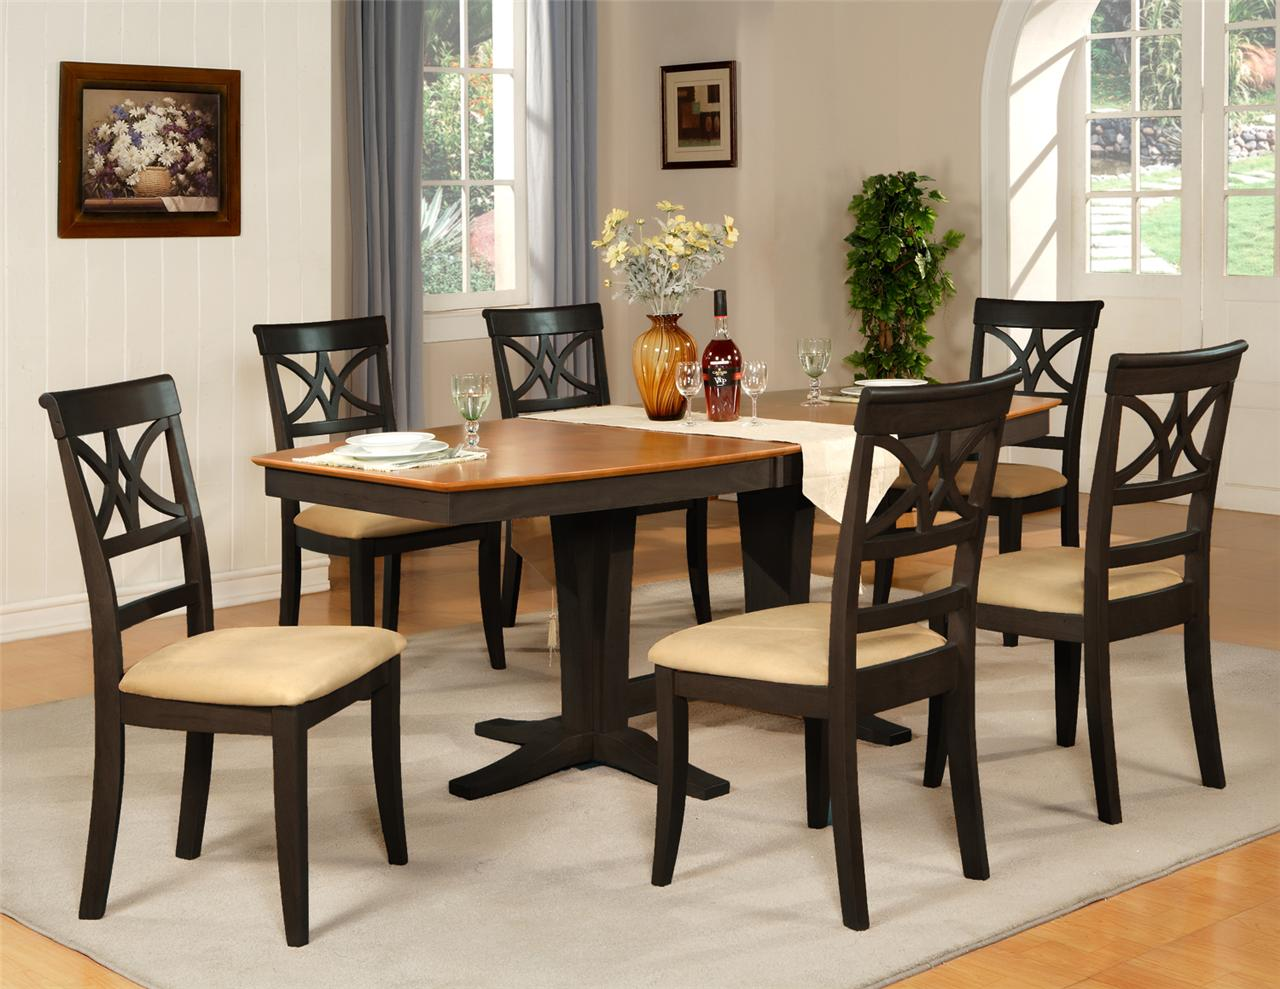 7pc dinette dining room table w 6 microfiber padded chairs black cherry brown. Black Bedroom Furniture Sets. Home Design Ideas